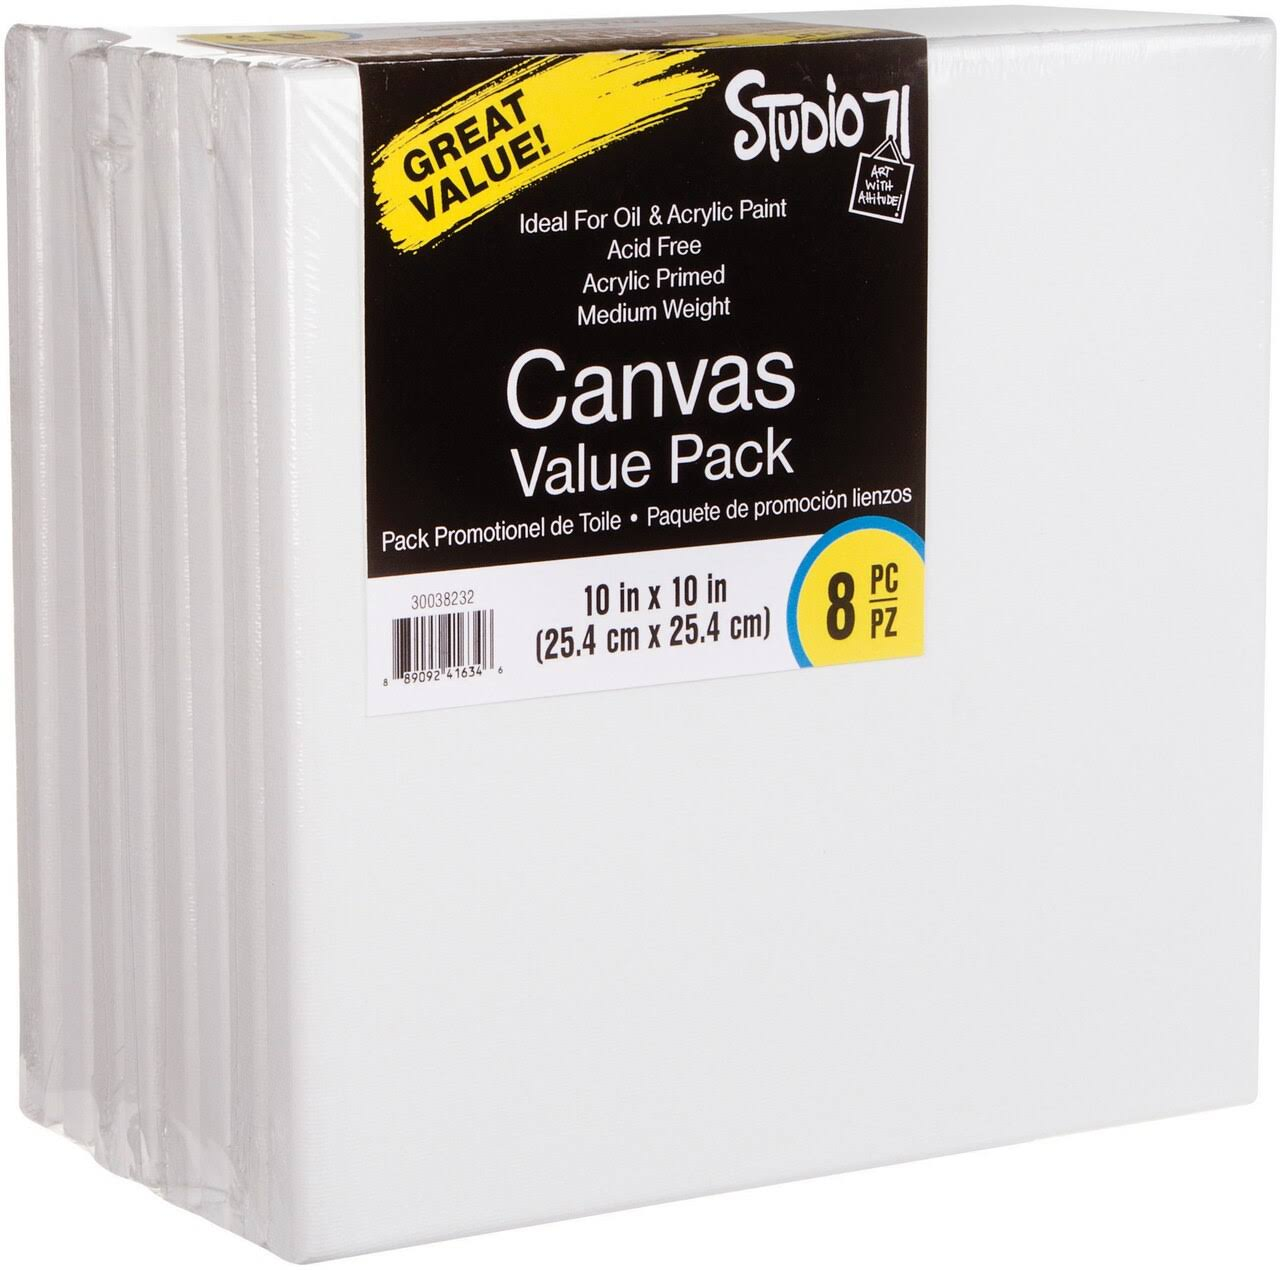 "Studio 71 Stretched Canvas Value Pack 8/Pkg 10""x10"""